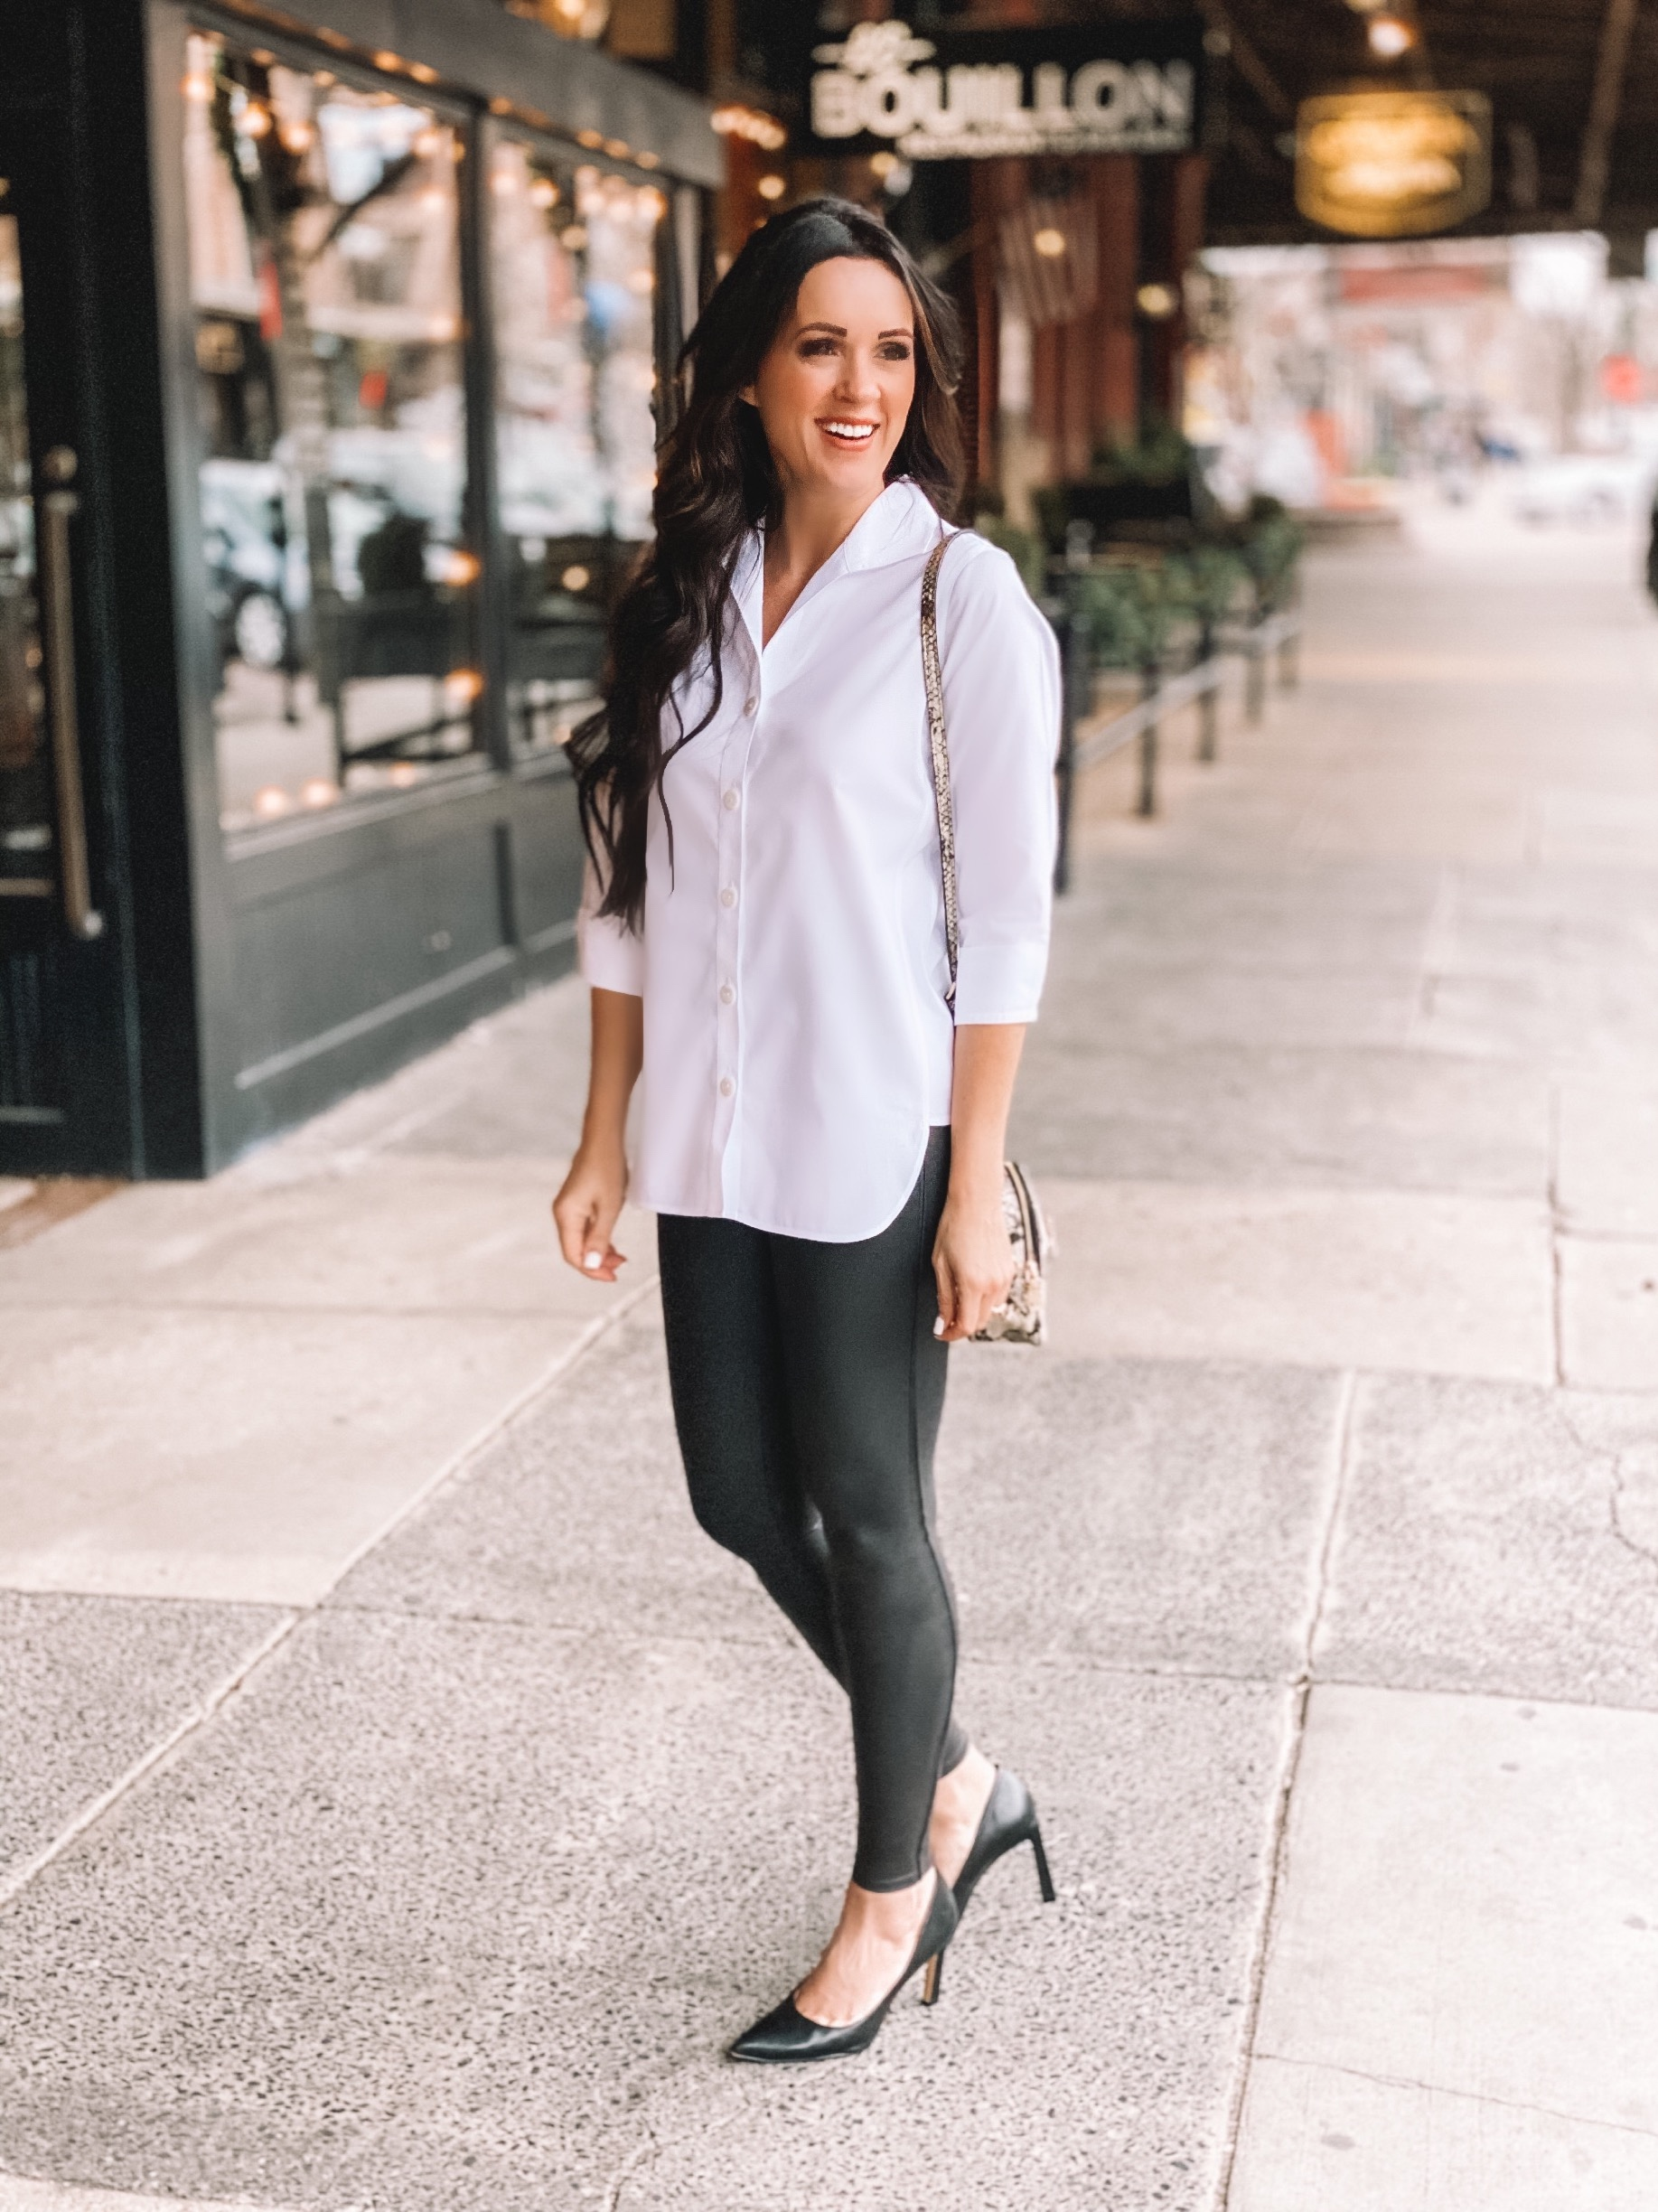 Any shirt that is legging-friendly is a friend of mine!